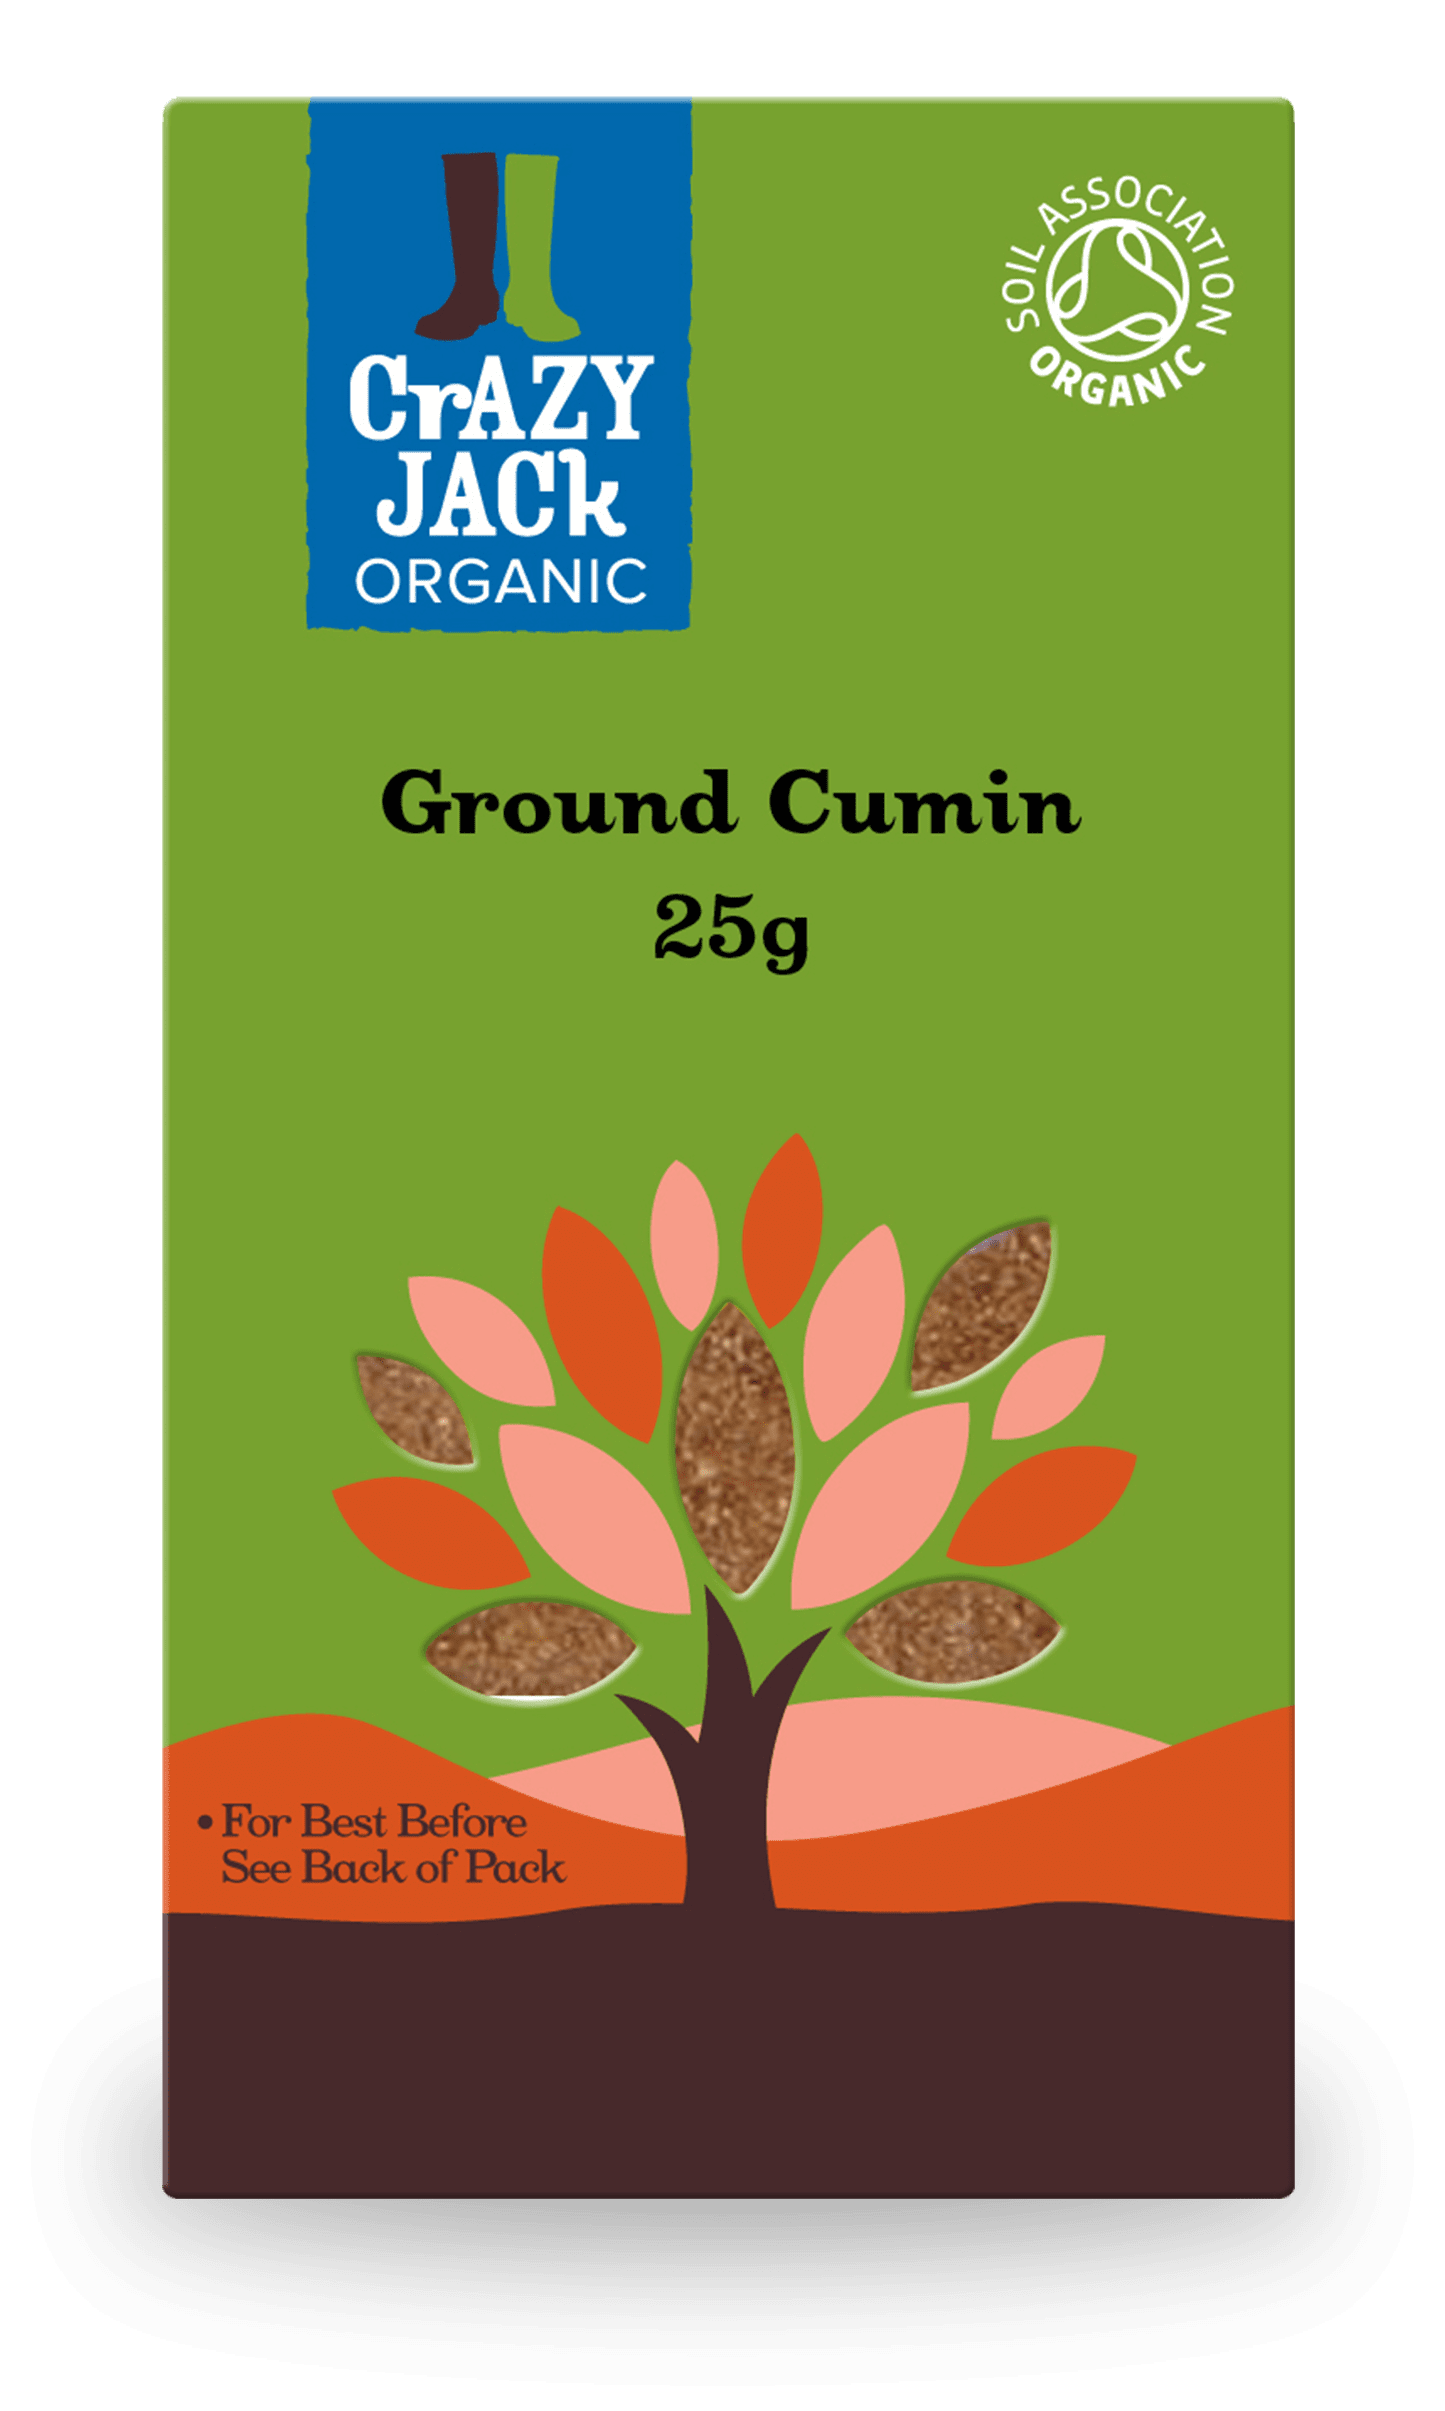 25g packet of organic ground cumin